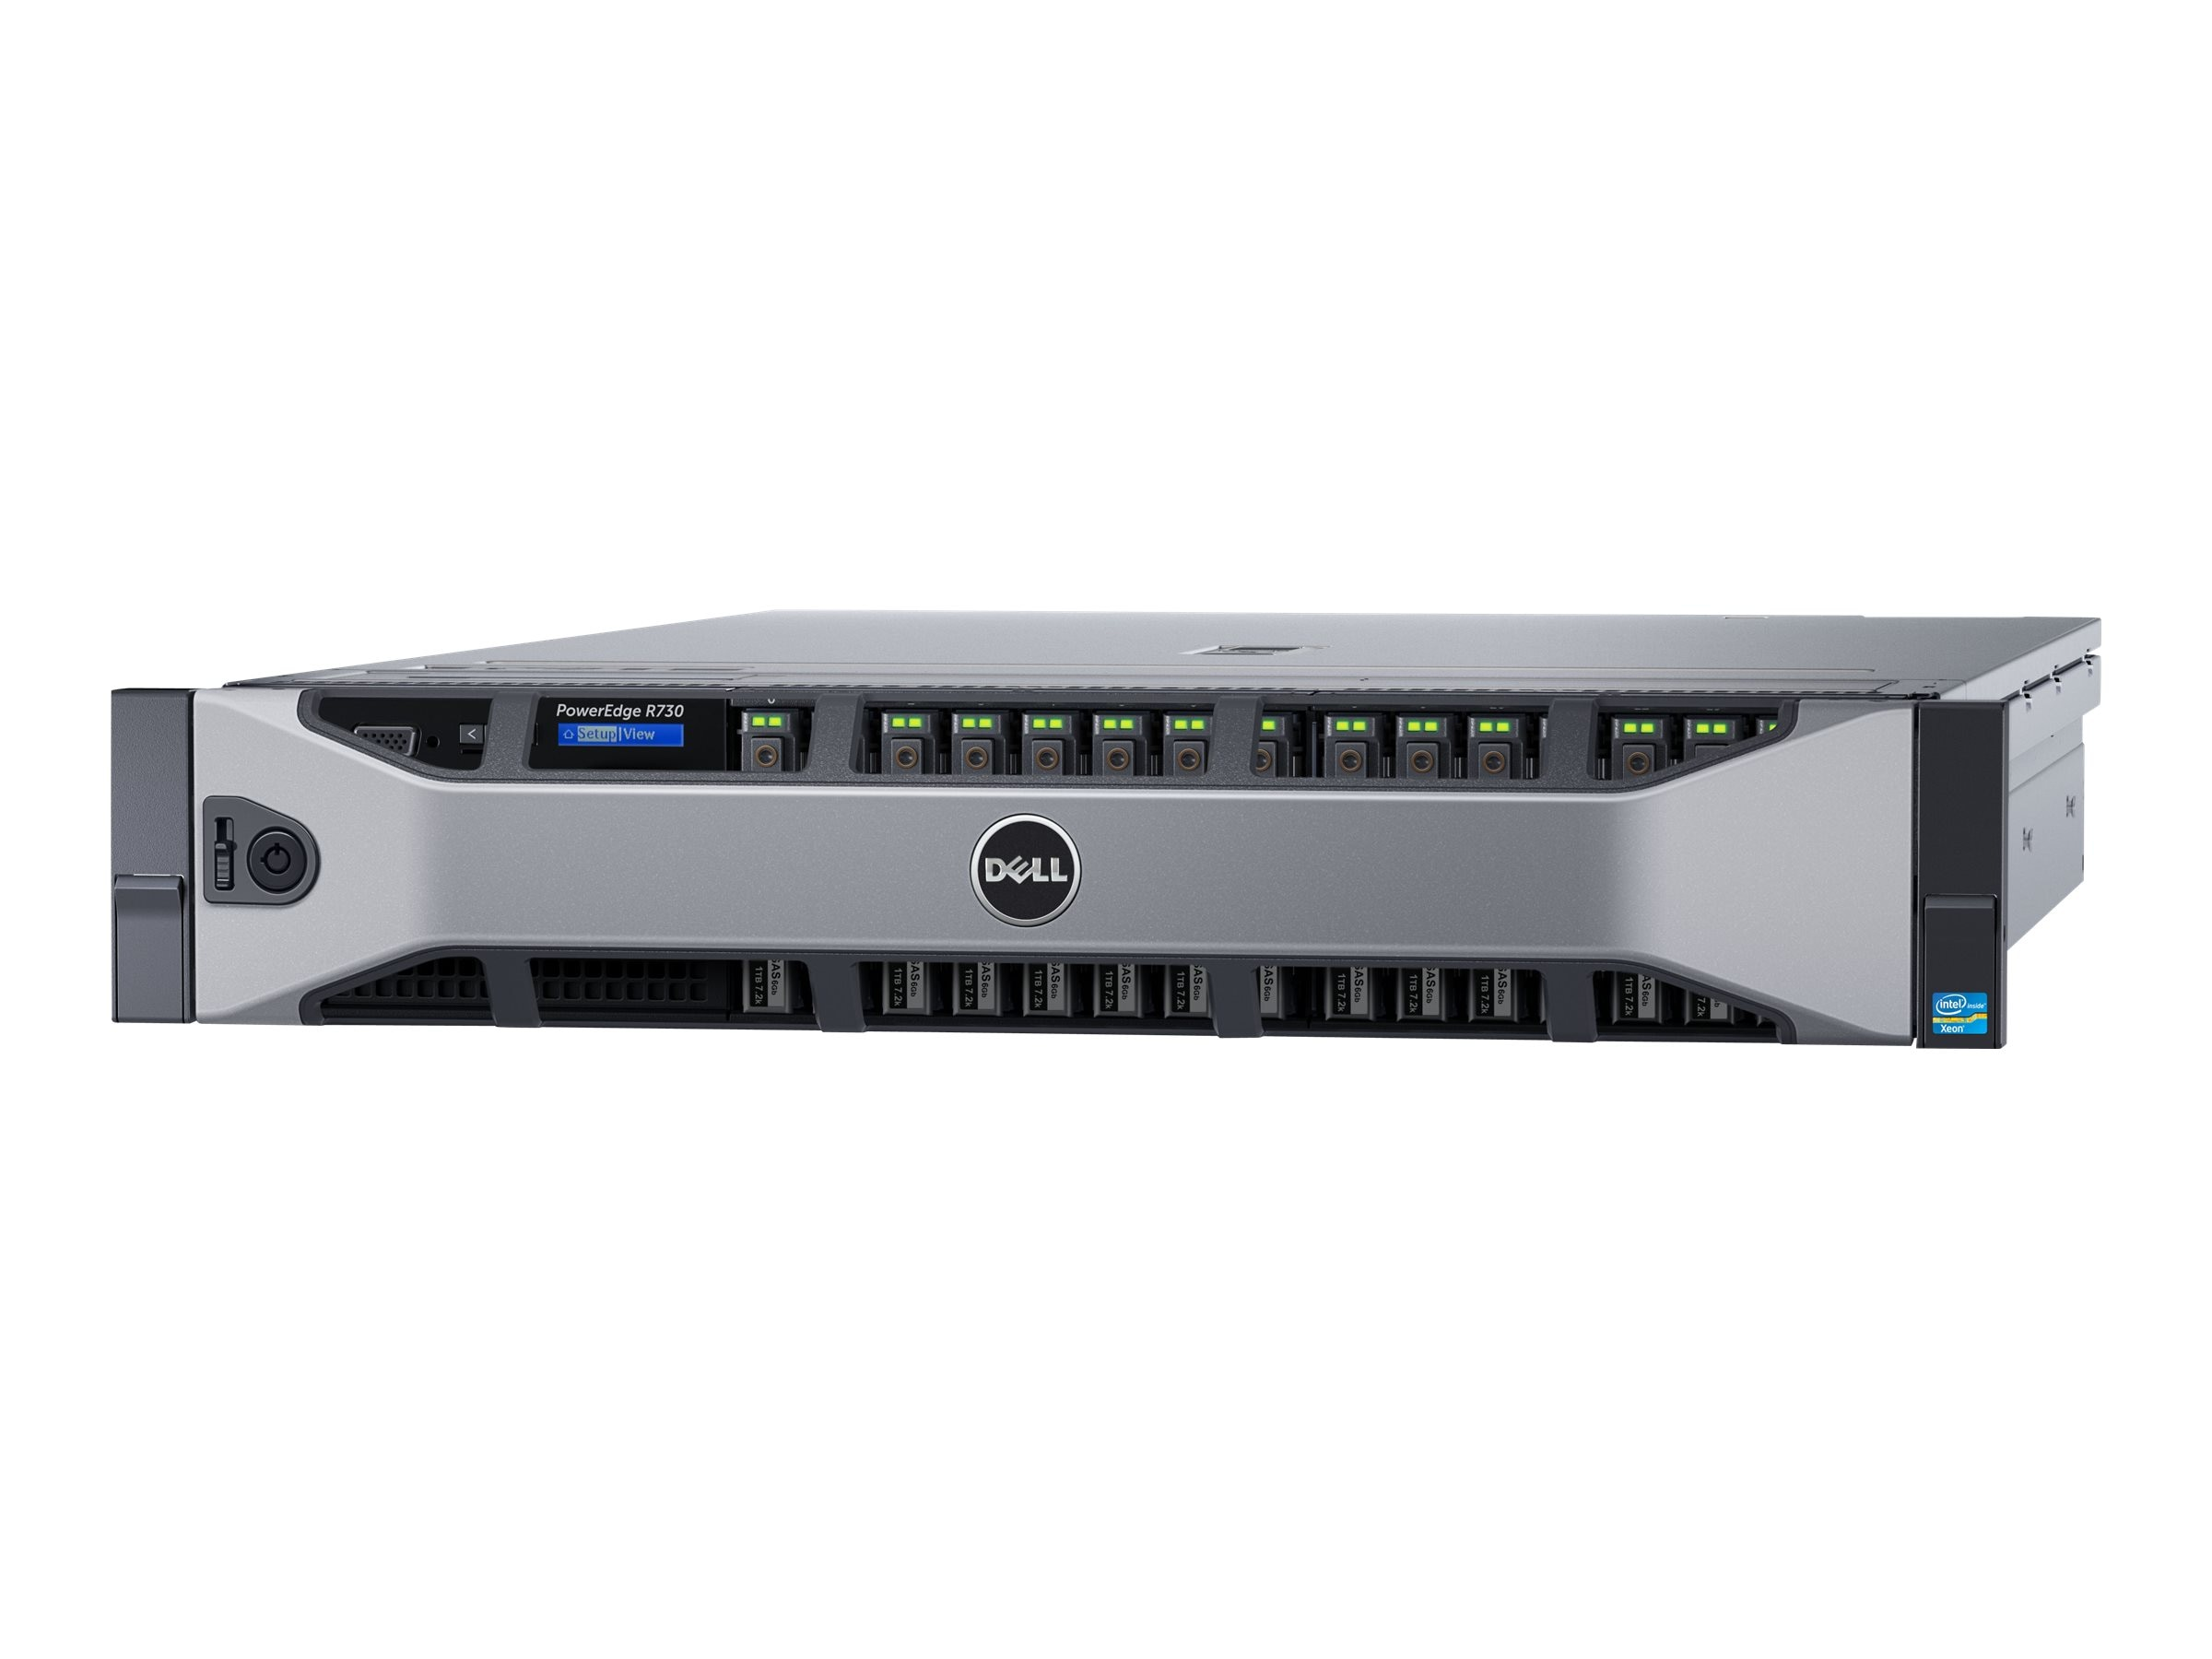 Dell PowerEdge R730 Intel 2.1GHz Xeon, 463-7661, 32103127, Servers